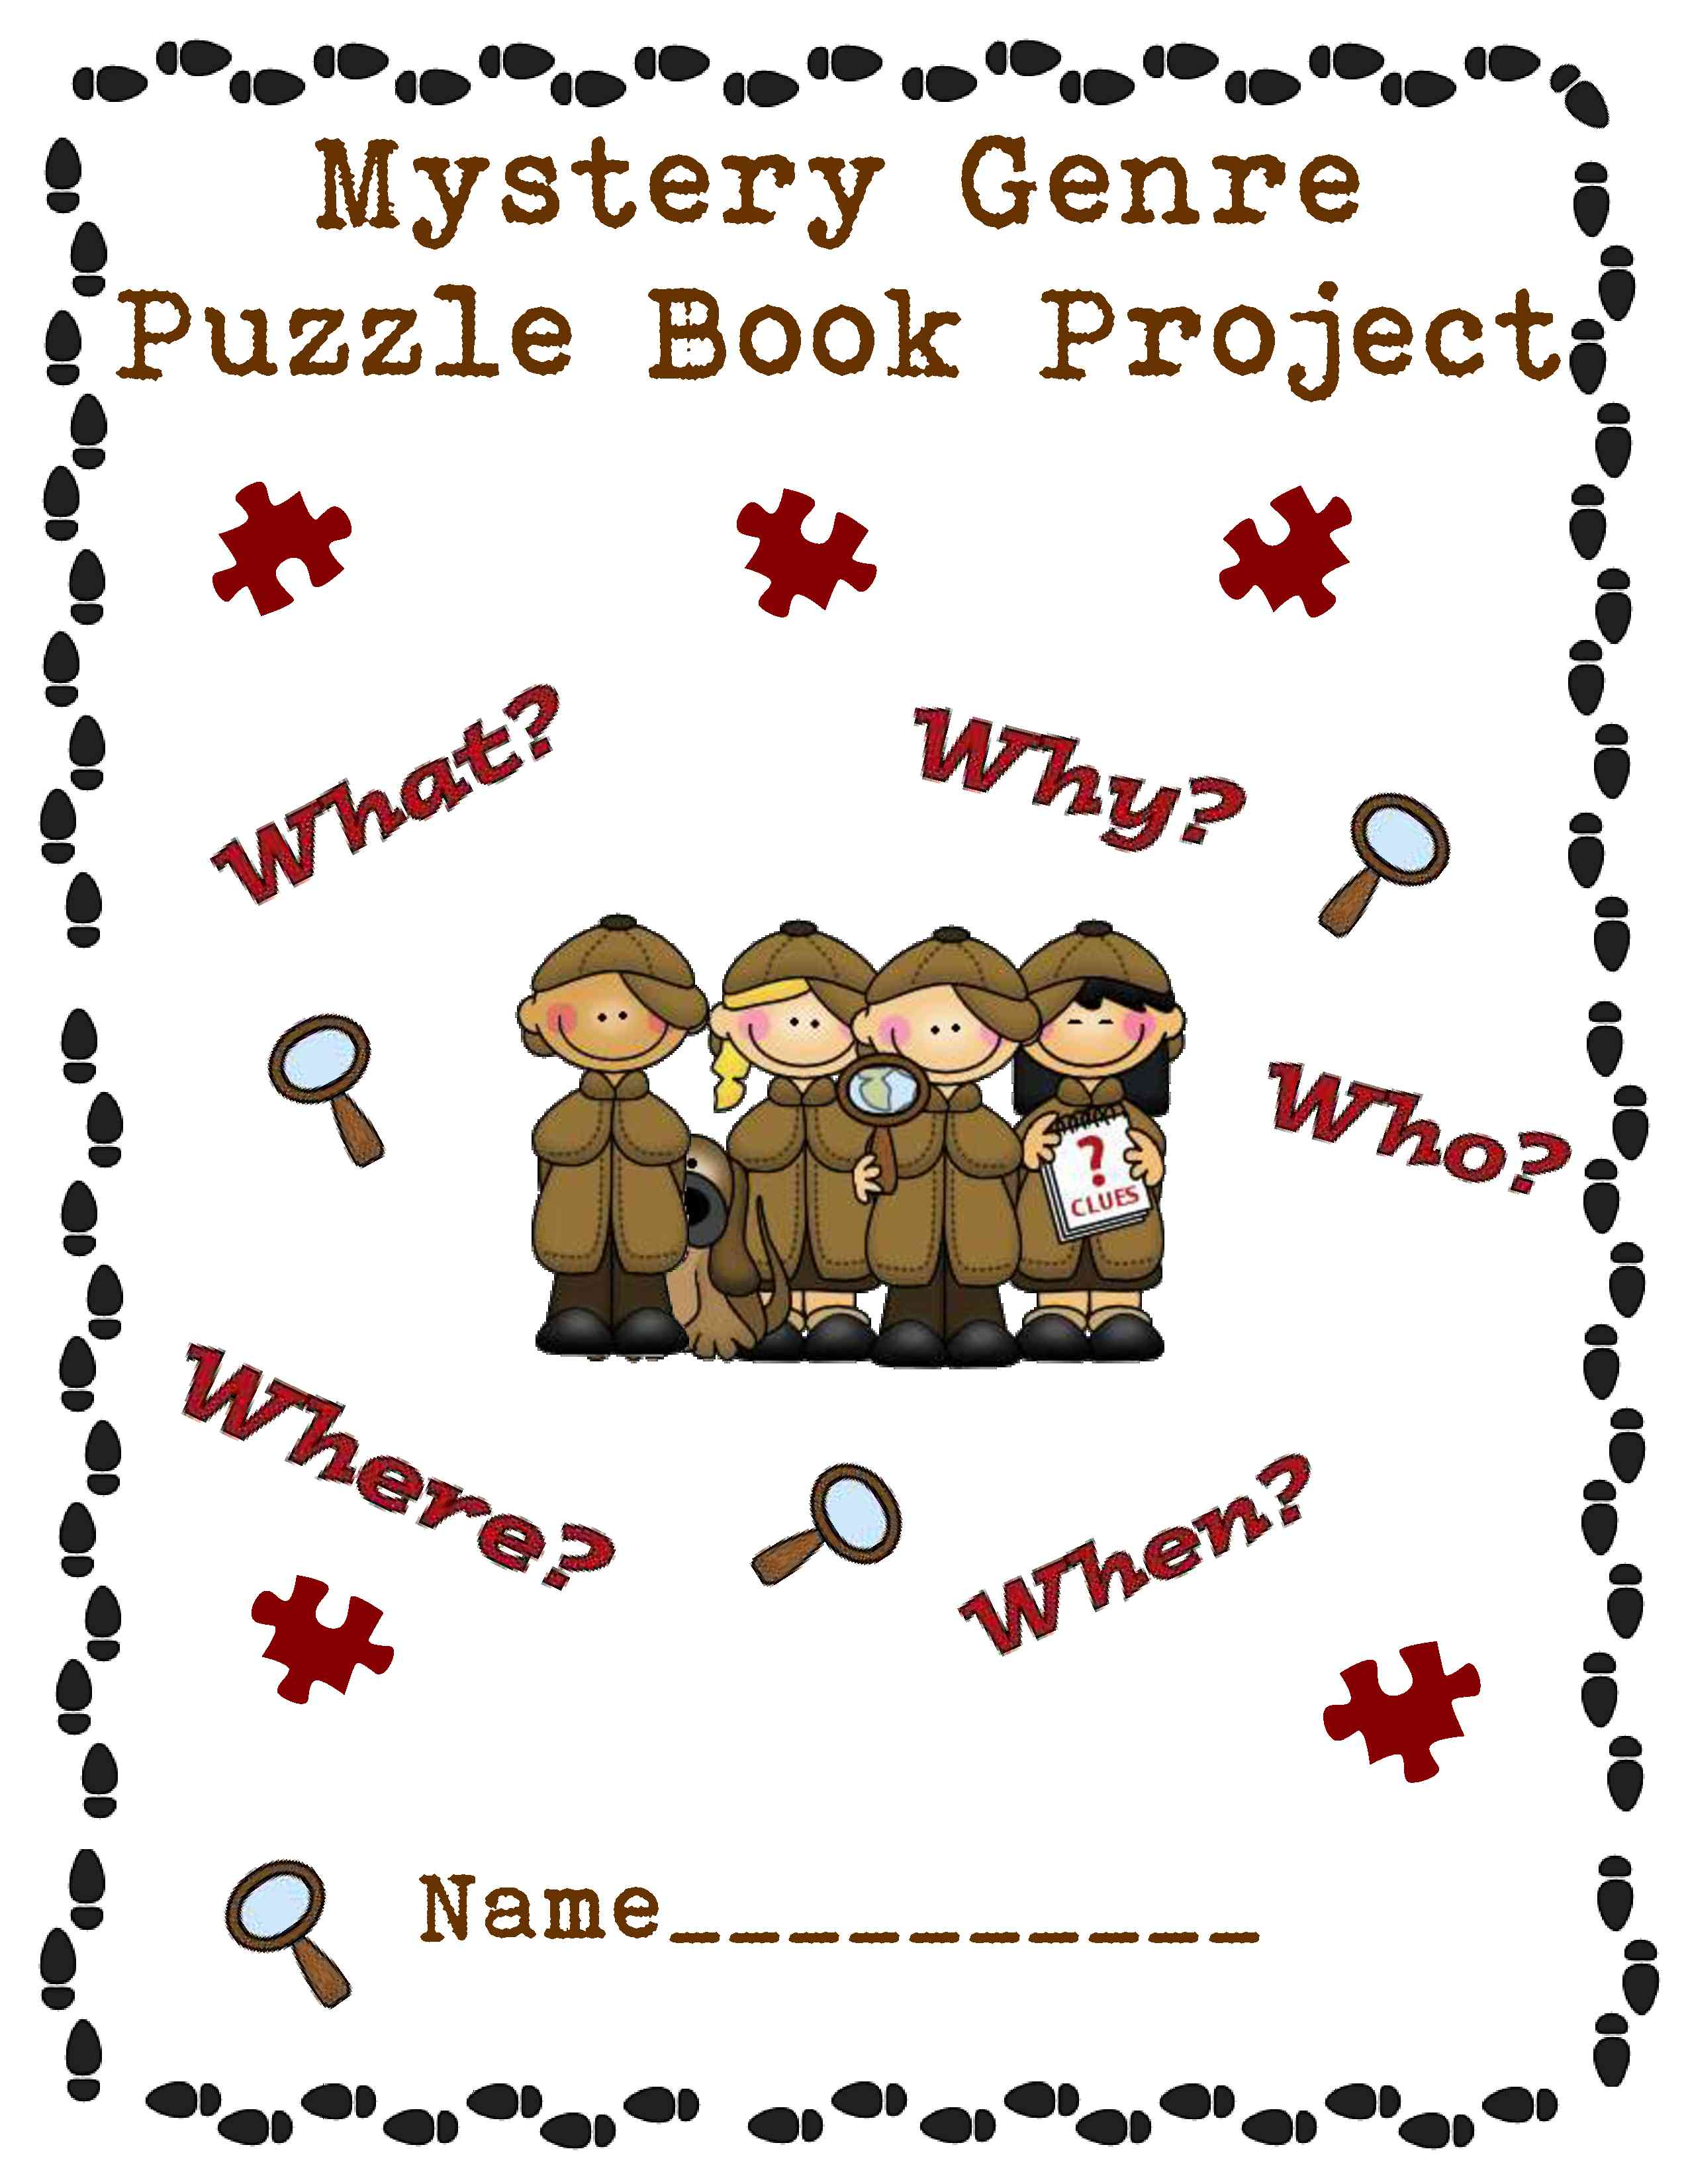 My Giant Jigsaw Puzzle Book Project